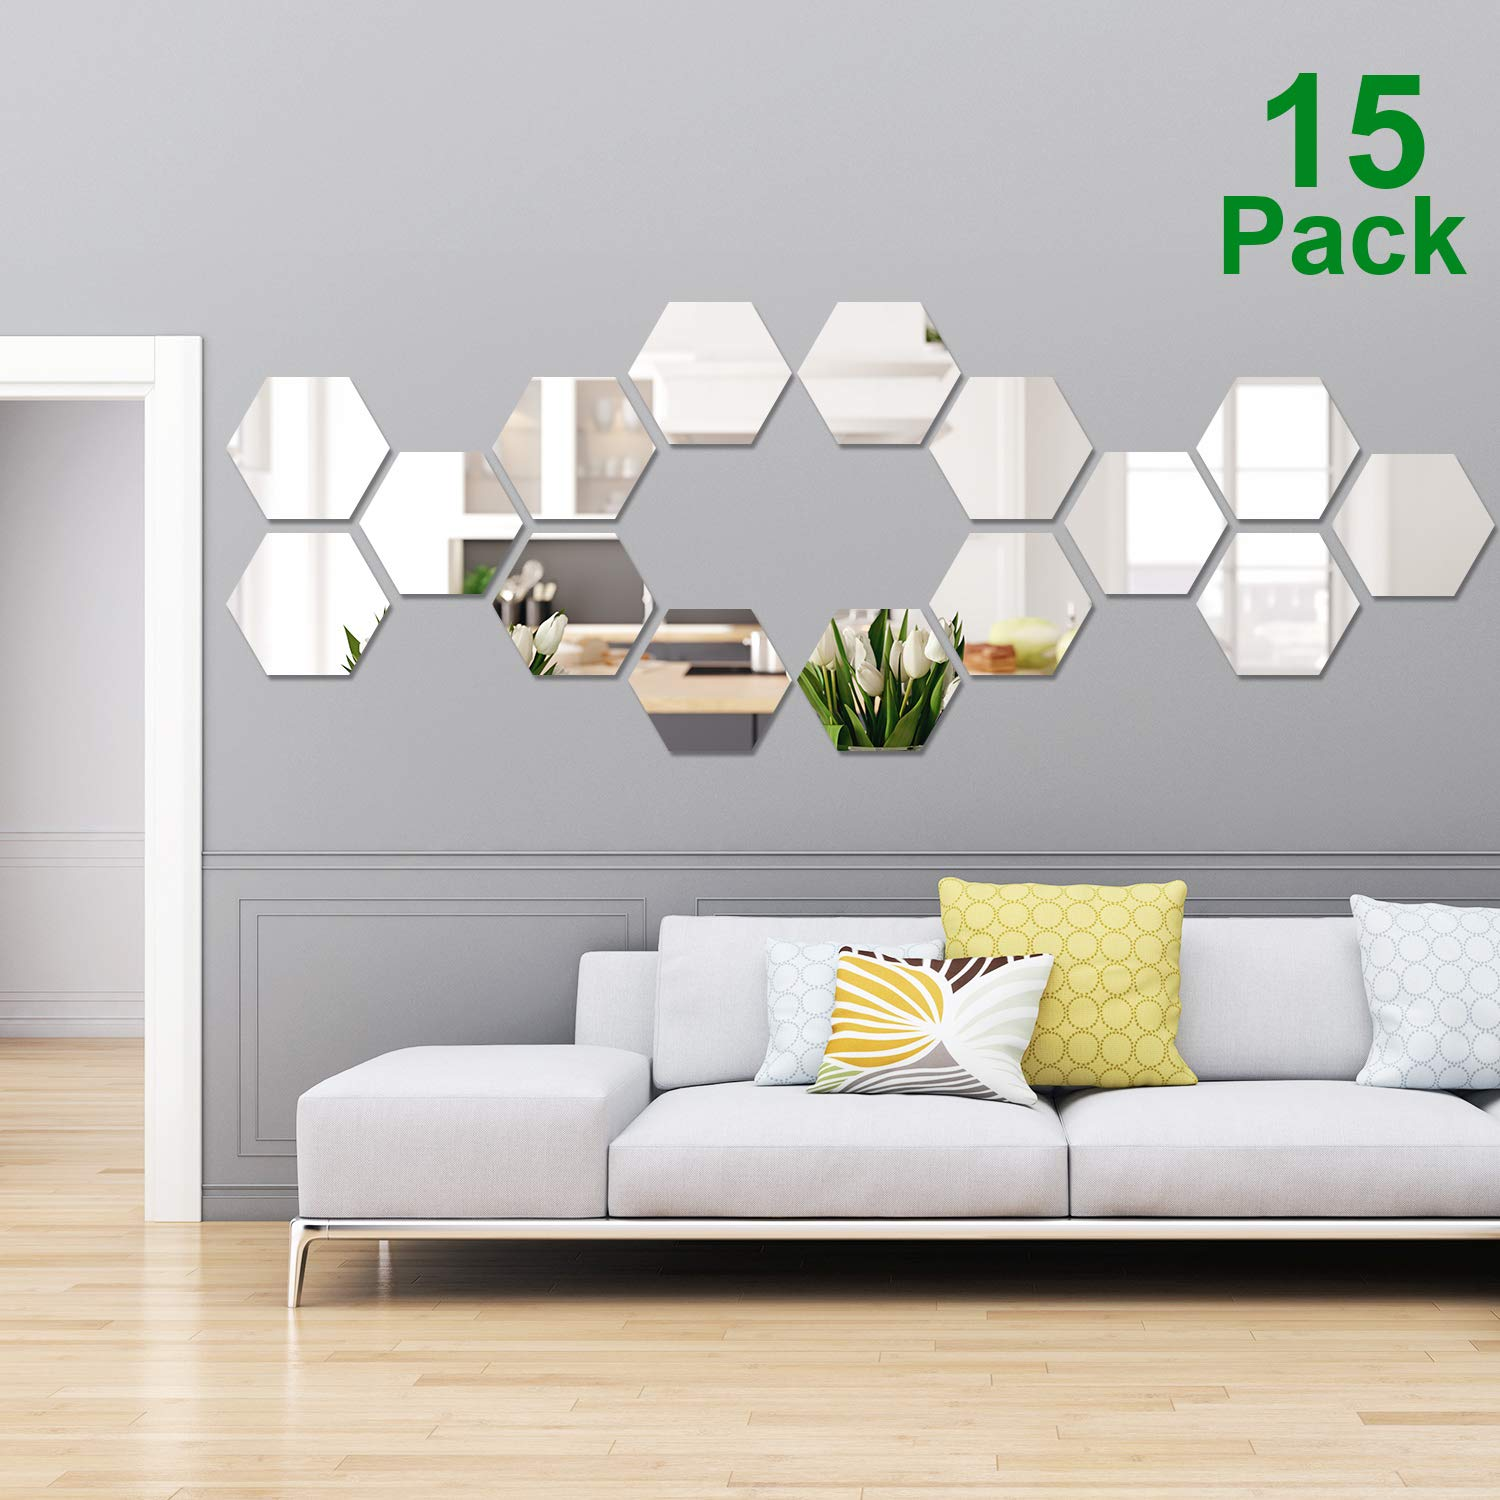 15 Pieces Removable Acrylic Mirror Setting Wall Sticker Decal for Home Living Room Bedroom Decor (Hexagon